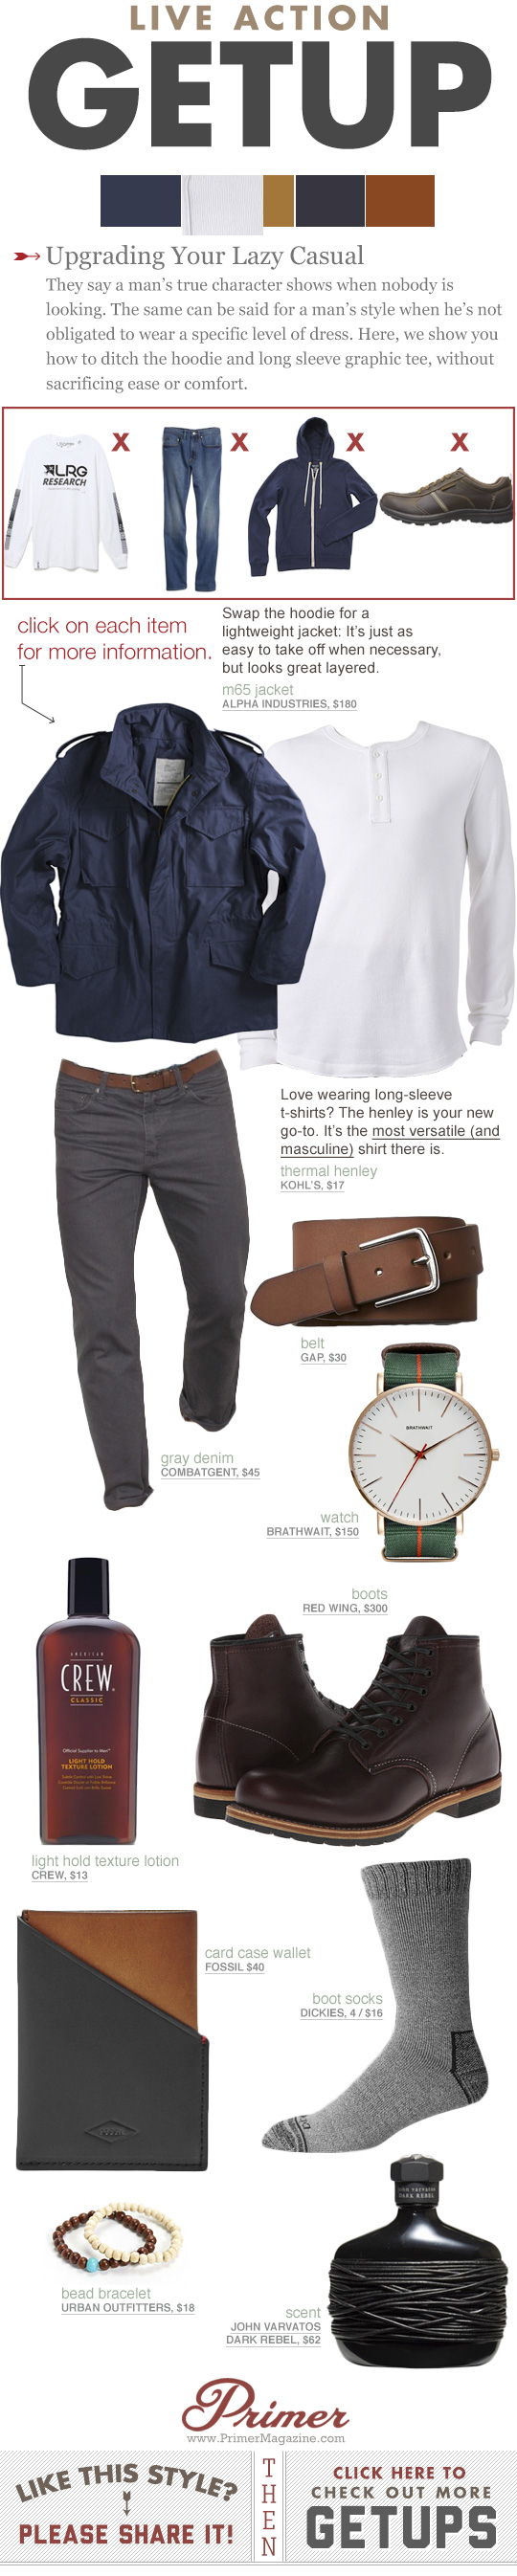 Getup - Upgrading Lazy Casual - with Blue military jacket, henley, and gray jeans